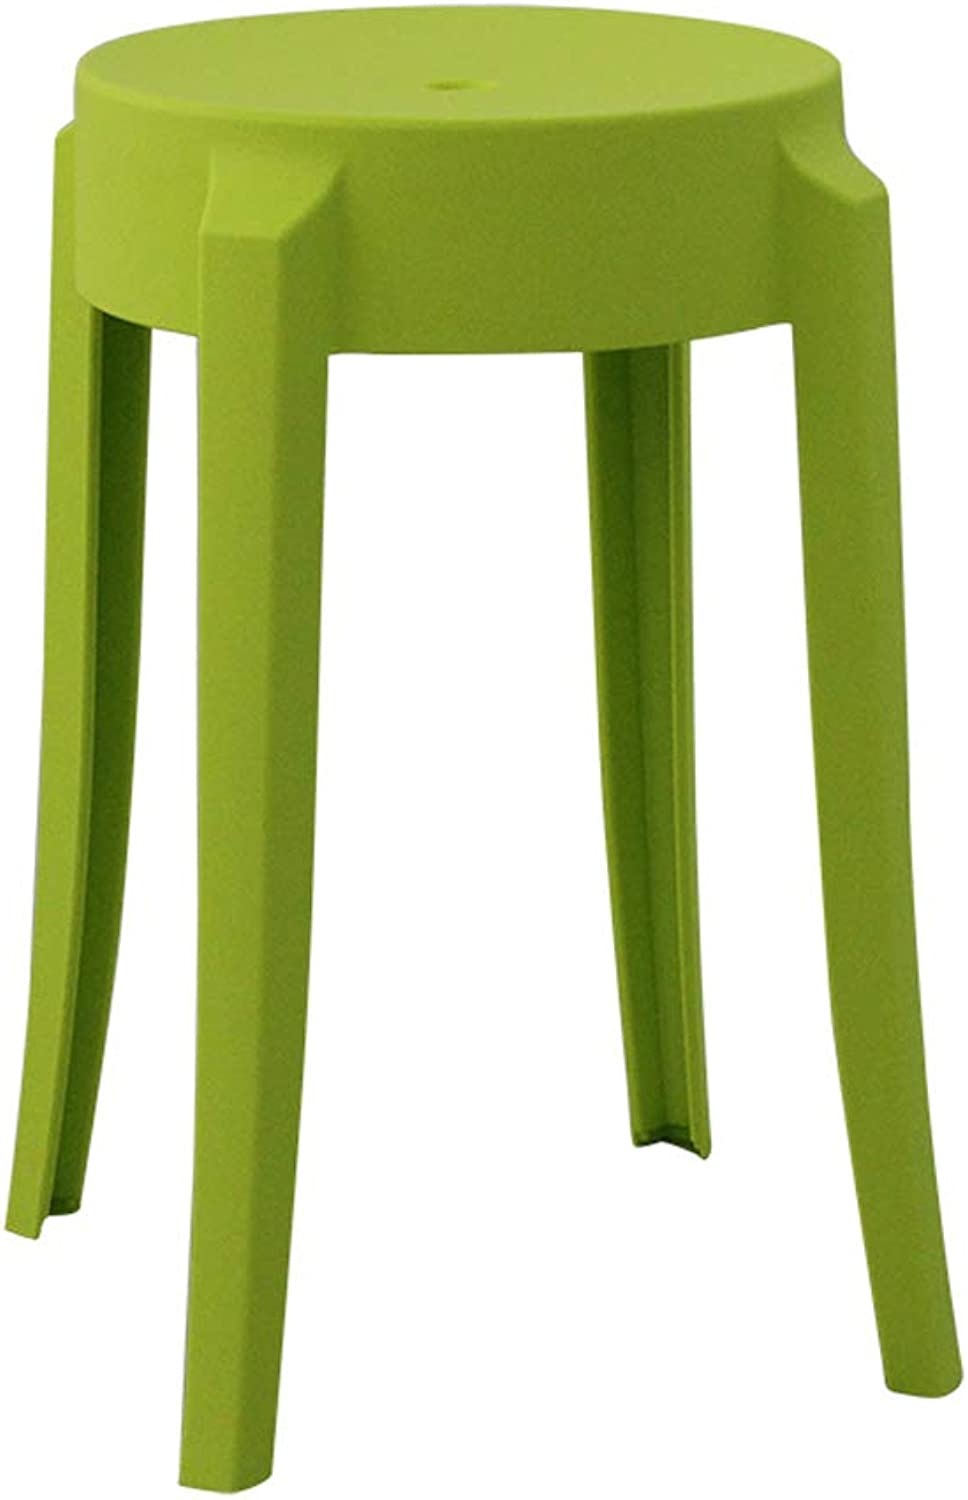 Nordic Creative Green Plastic Stool Thickened Adult Fashion Small Stool Modern Home High Stool